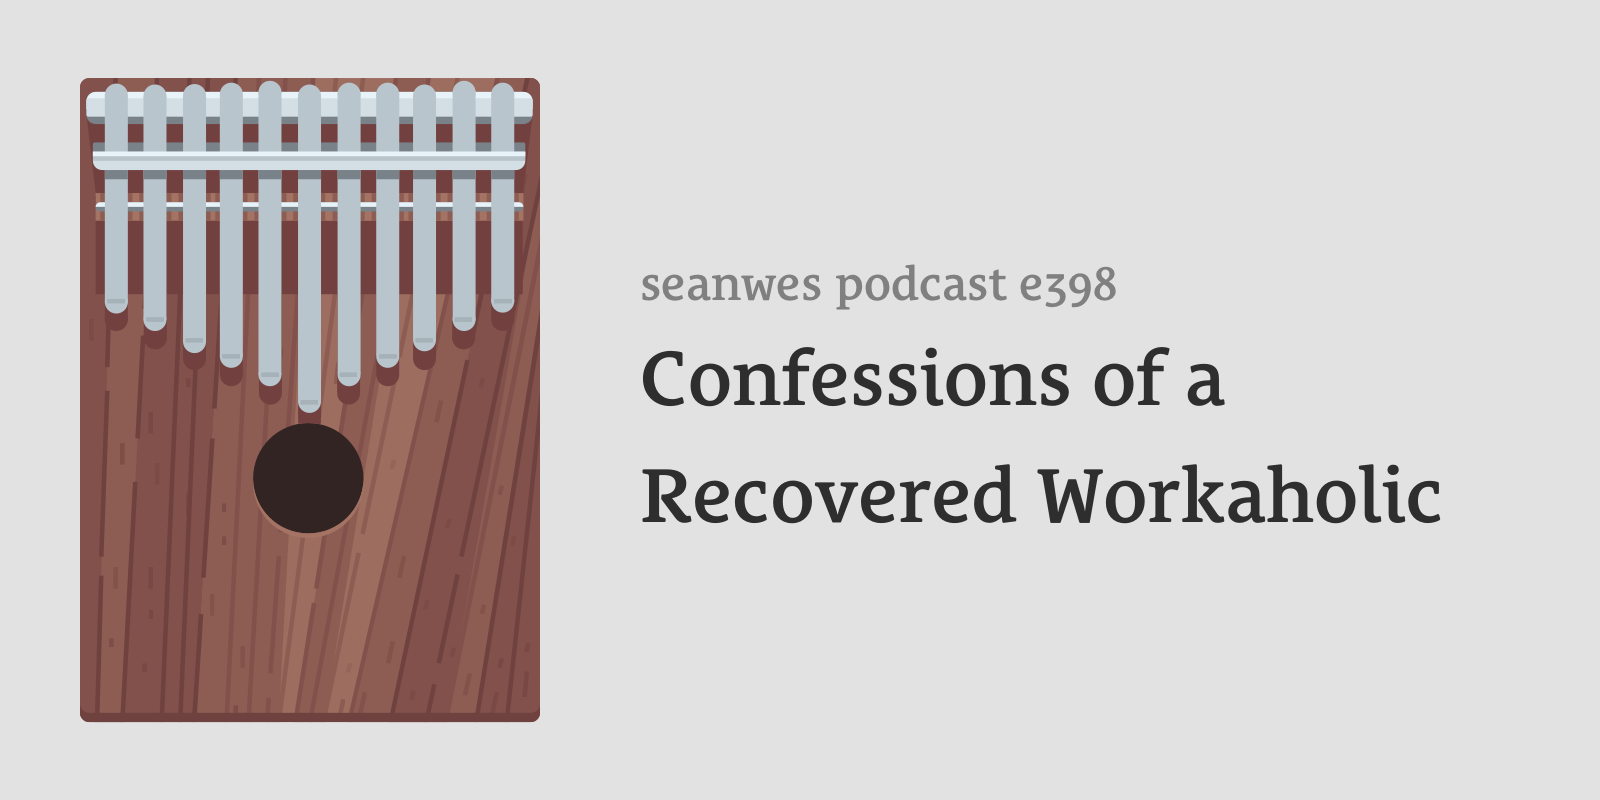 Confessions of a Recovered Workaholic